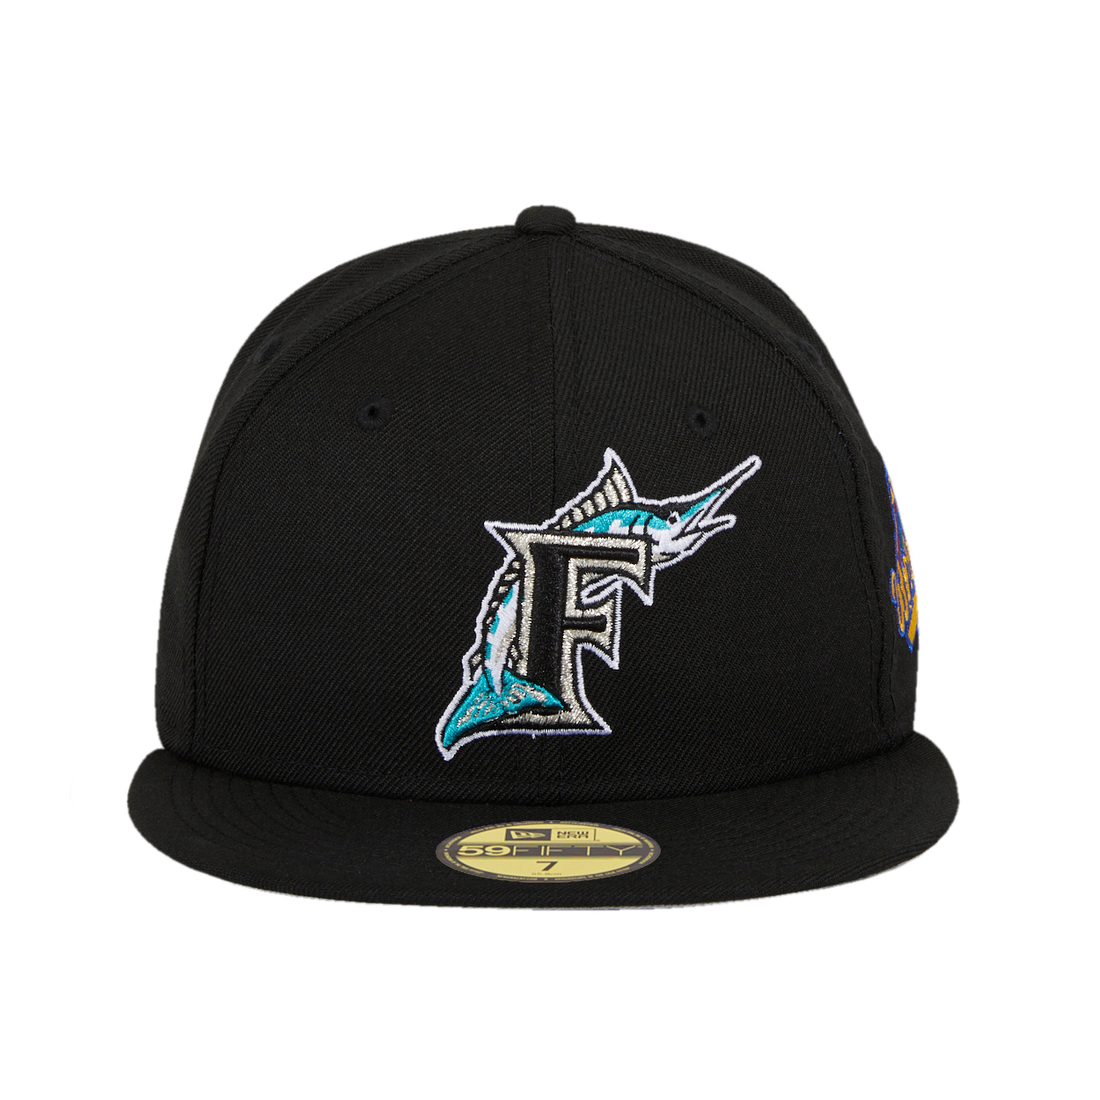 New Era 59Fifty Florida Marlins 1997 World Series Patch Hat - Black